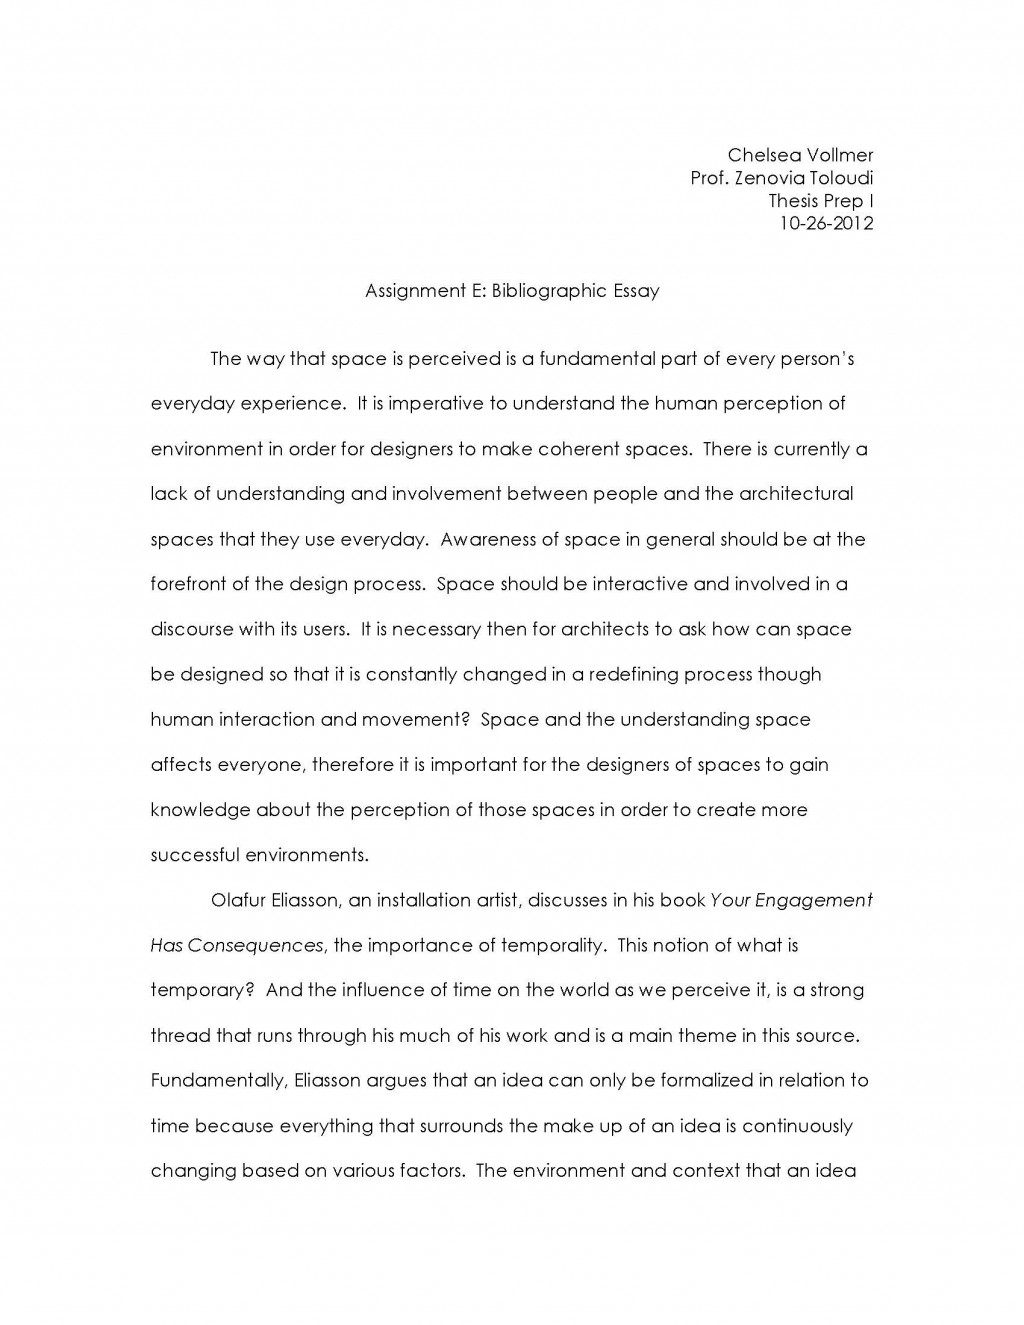 006 Essay Example Assignment E Page 12 How To Write Fascinating A Satire On Obesity Outline Essay-example Large